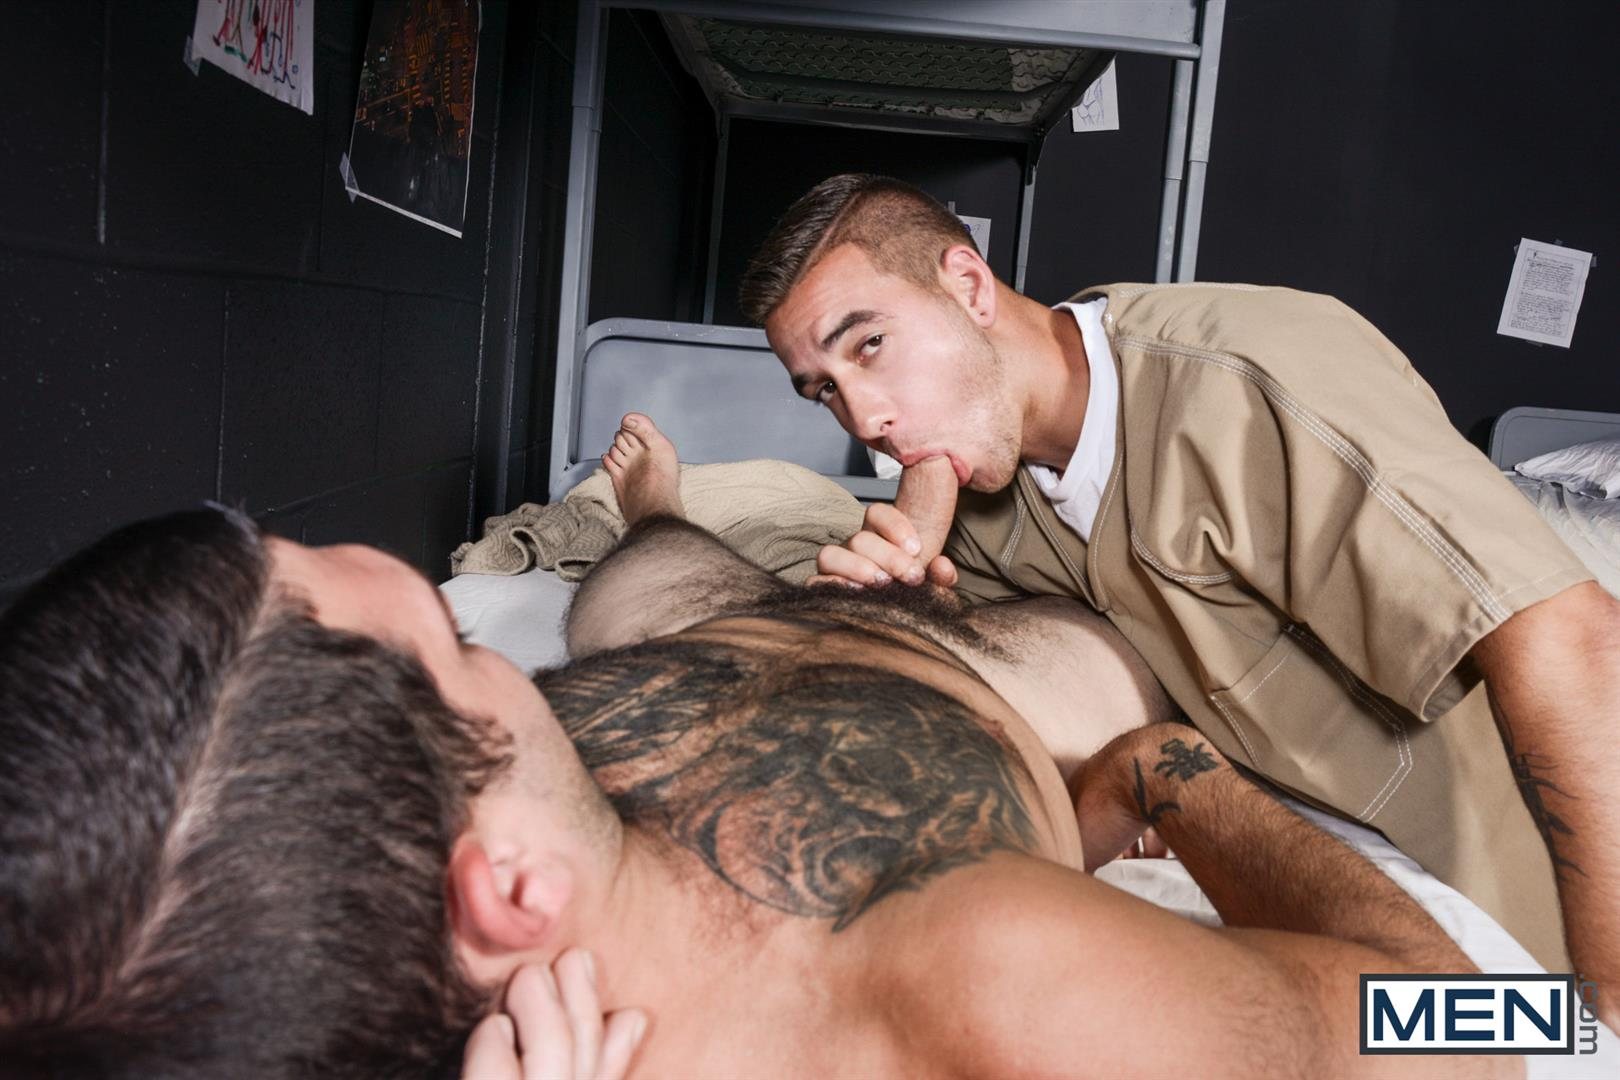 Men Tony Paradise and Dimitri Kane Straight Men Having Sex in Prison Amateur Gay Porn 11 Learning How To Survive In Prison By Taking Cock